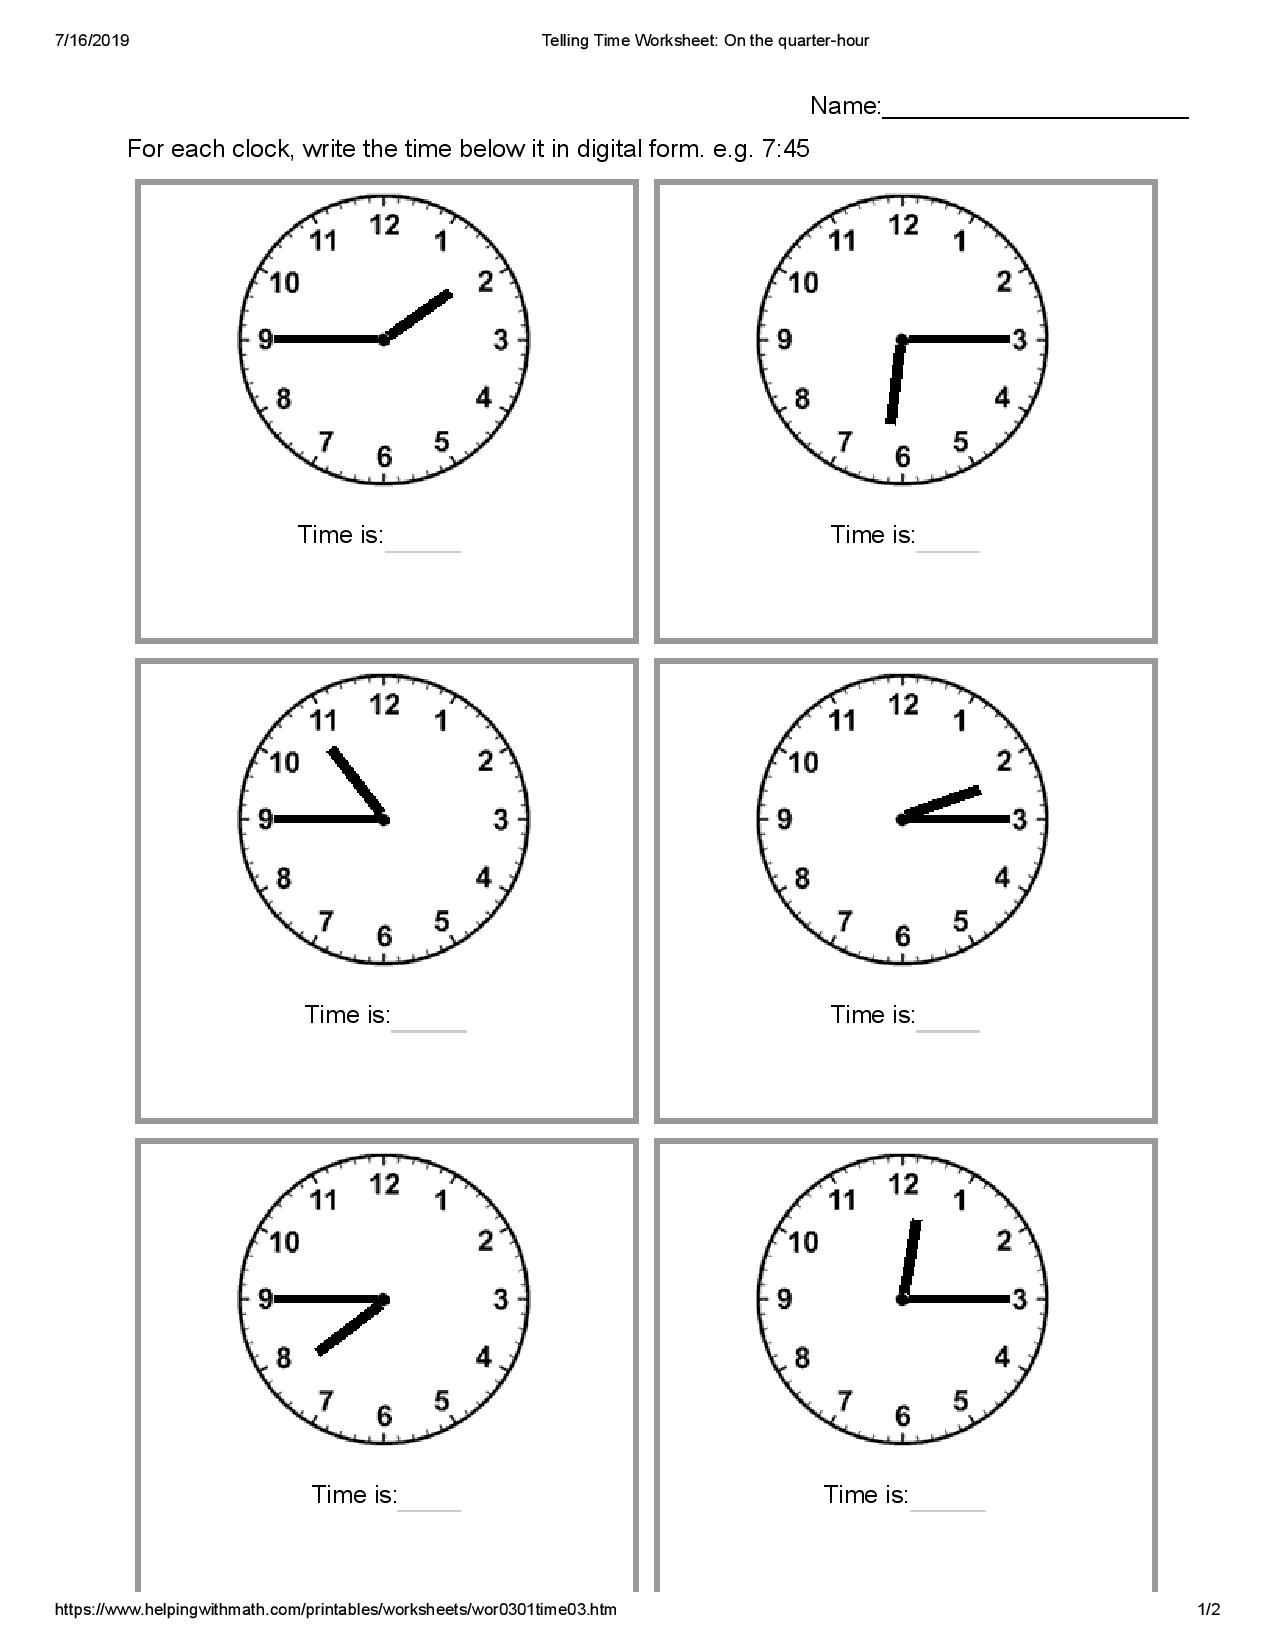 Repeated Addition Worksheets 2nd Grade   Printable Worksheets and  Activities for Teachers [ 1650 x 1275 Pixel ]